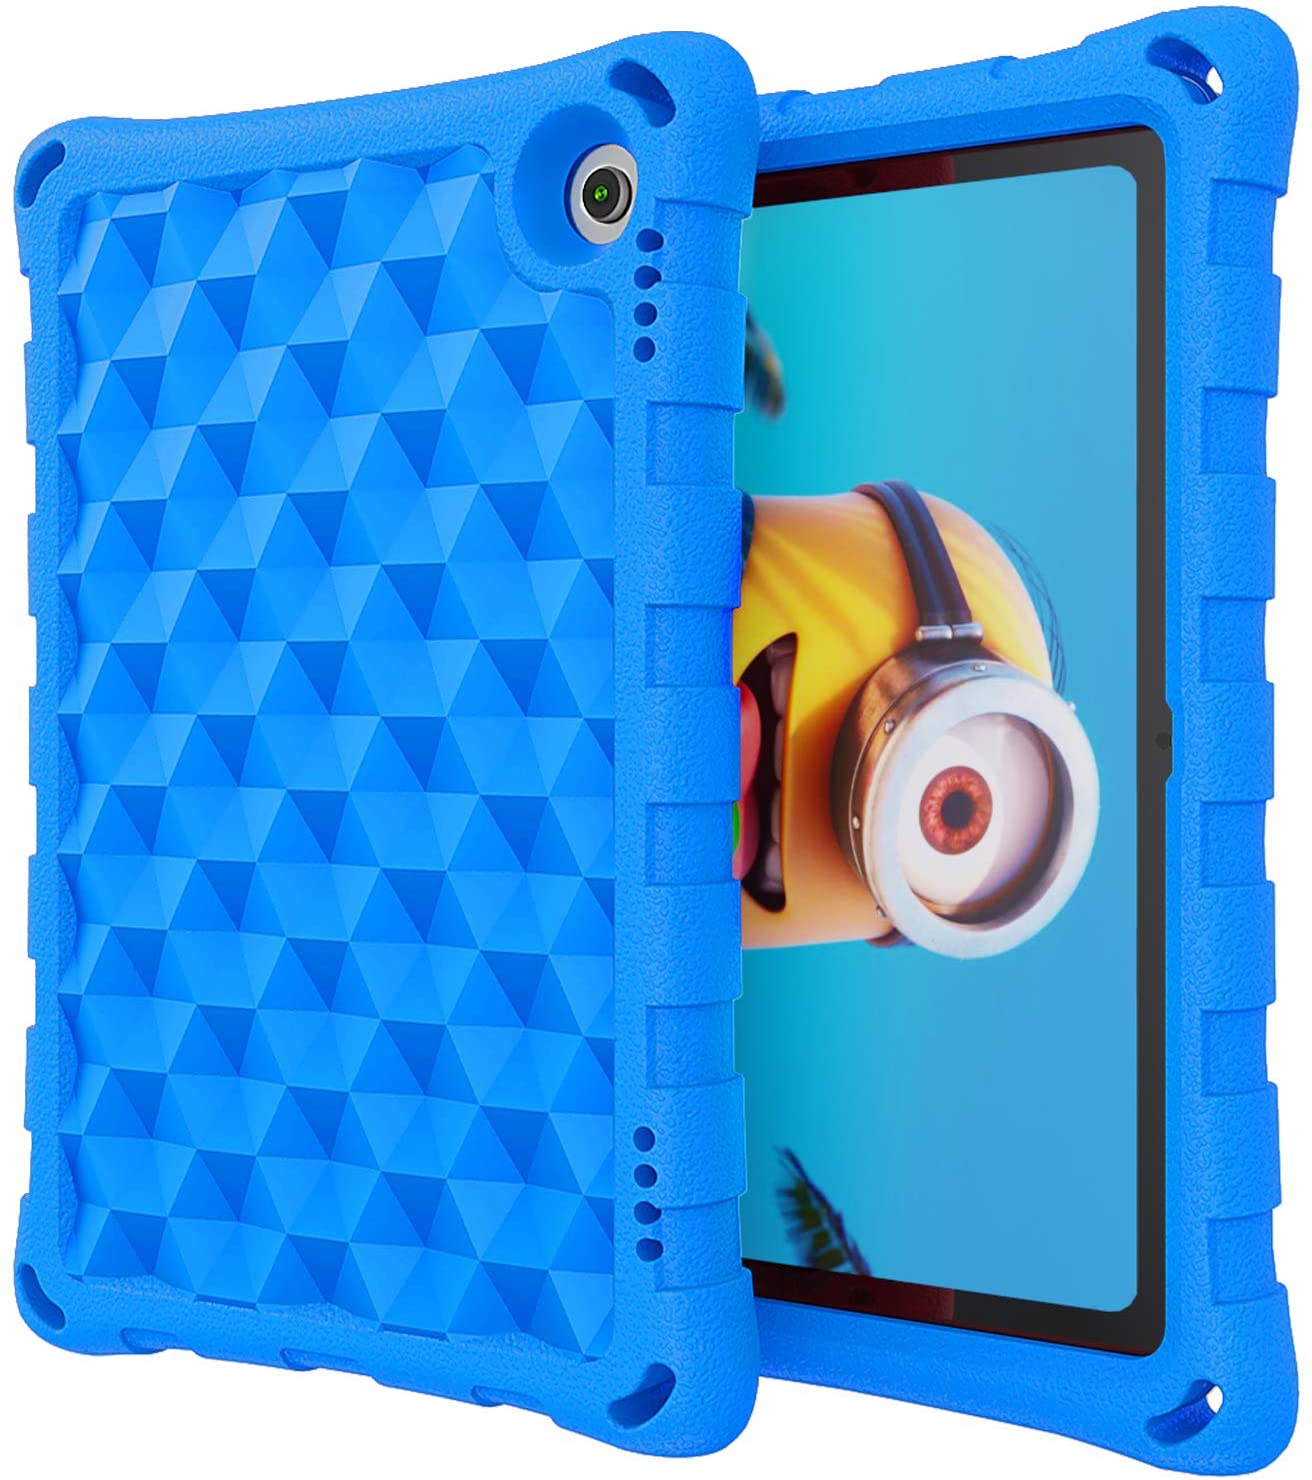 DJ&RPPQ Anti Slip Shockproof Light Weight Protective Case [Kids Friendly],All-New Tablet 8'' Case (Compatible with 10th Generation Tablets, 2020 Releases) - Blue